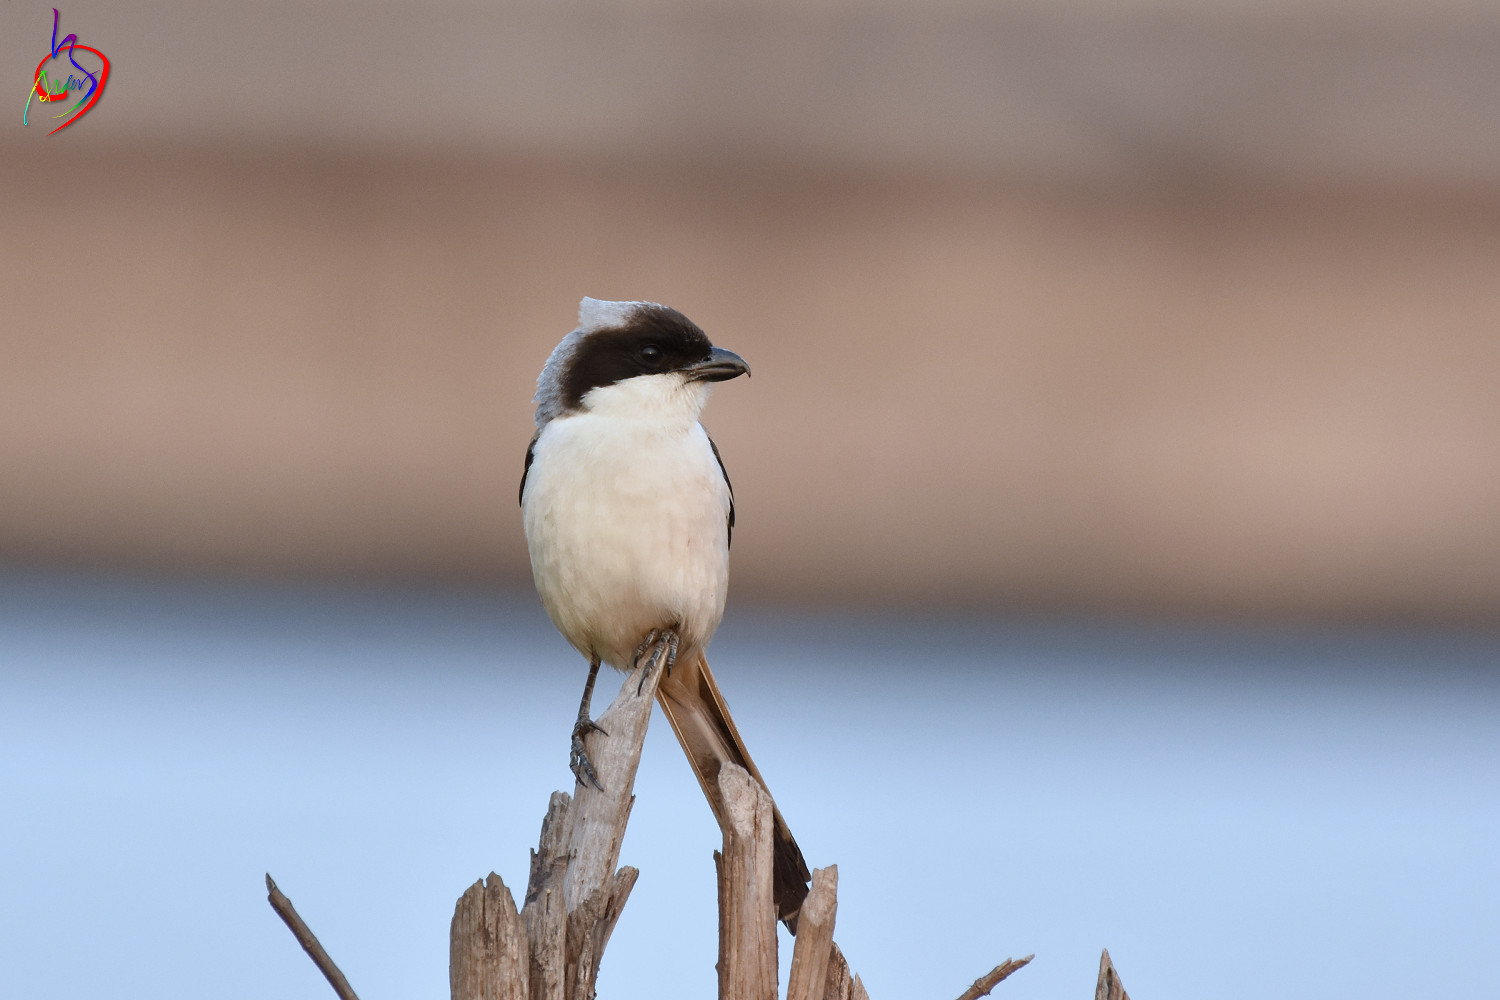 Long-tailed_Shrike_3961